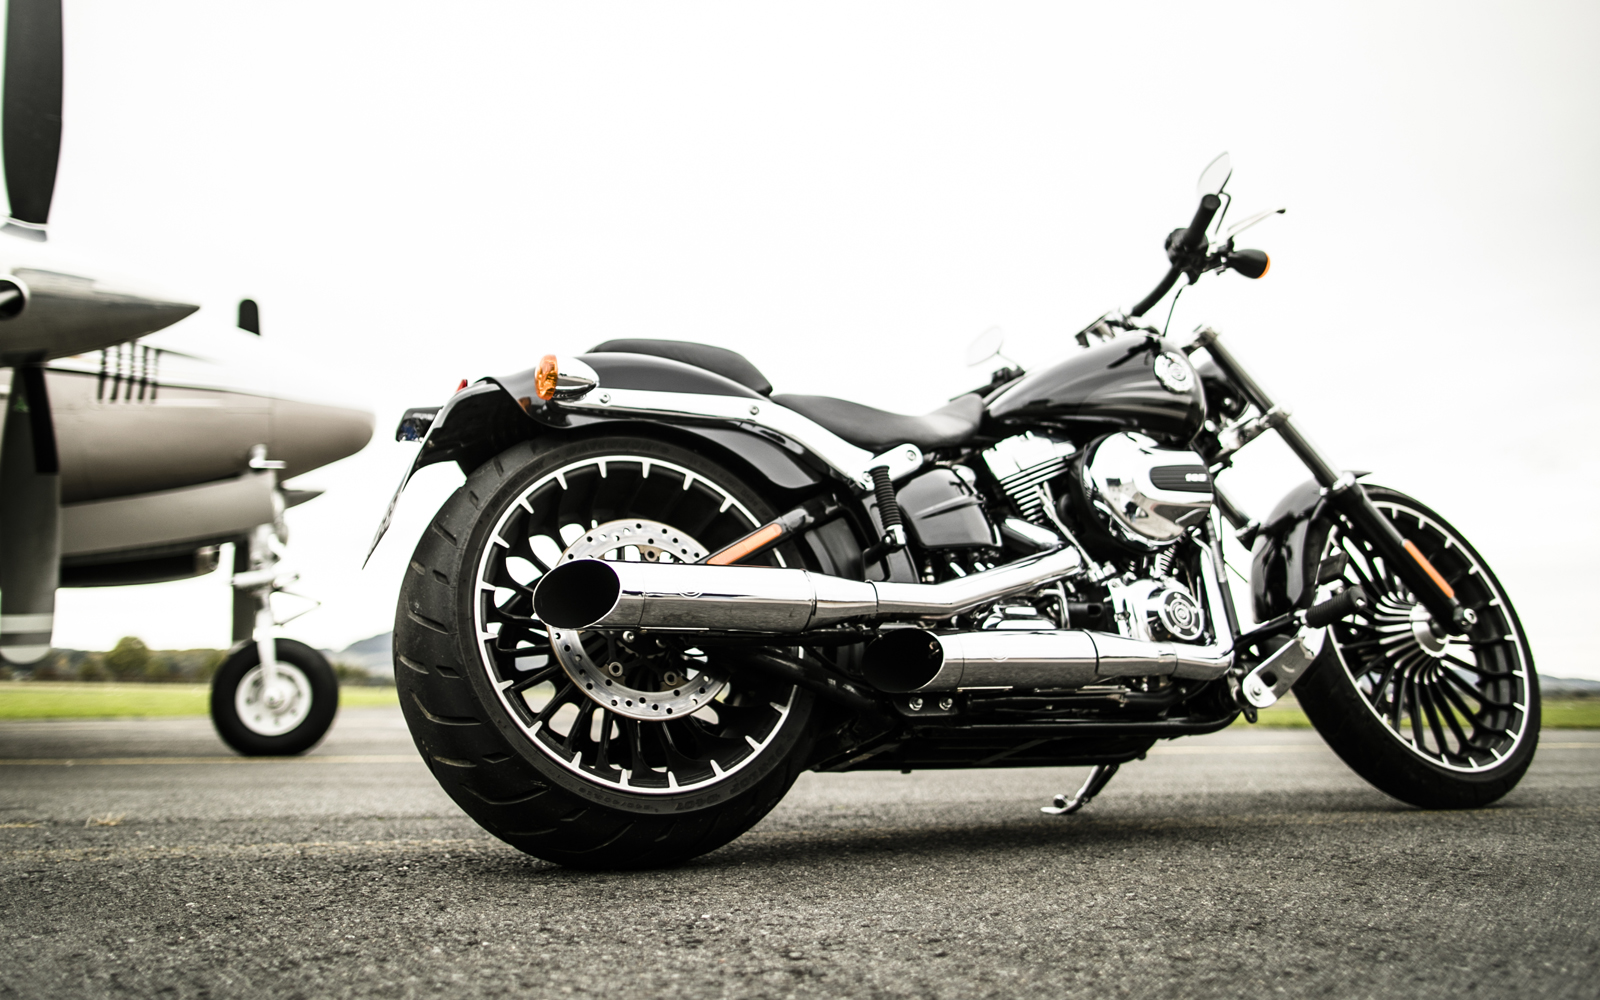 KessTech Adjustable Exhaust System on Harley Davidson